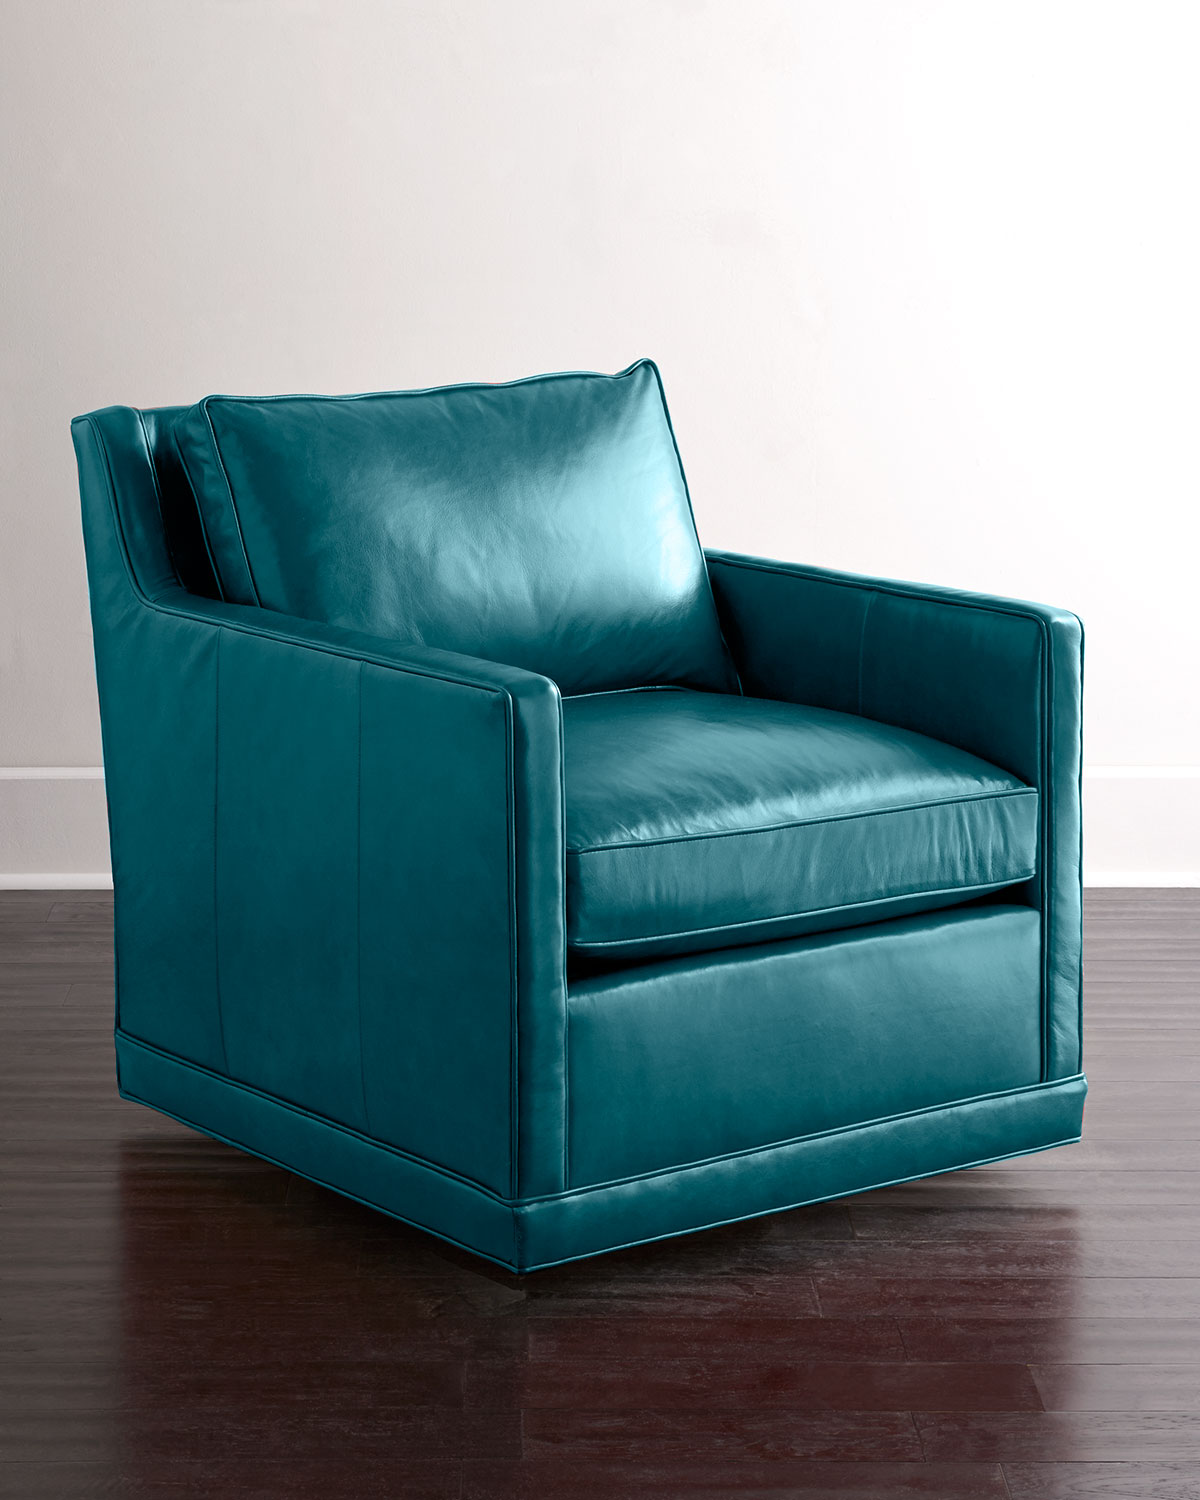 Blue Swivel Chair Nina St Clair Peacock Blue Leather Swivel Chair Neiman